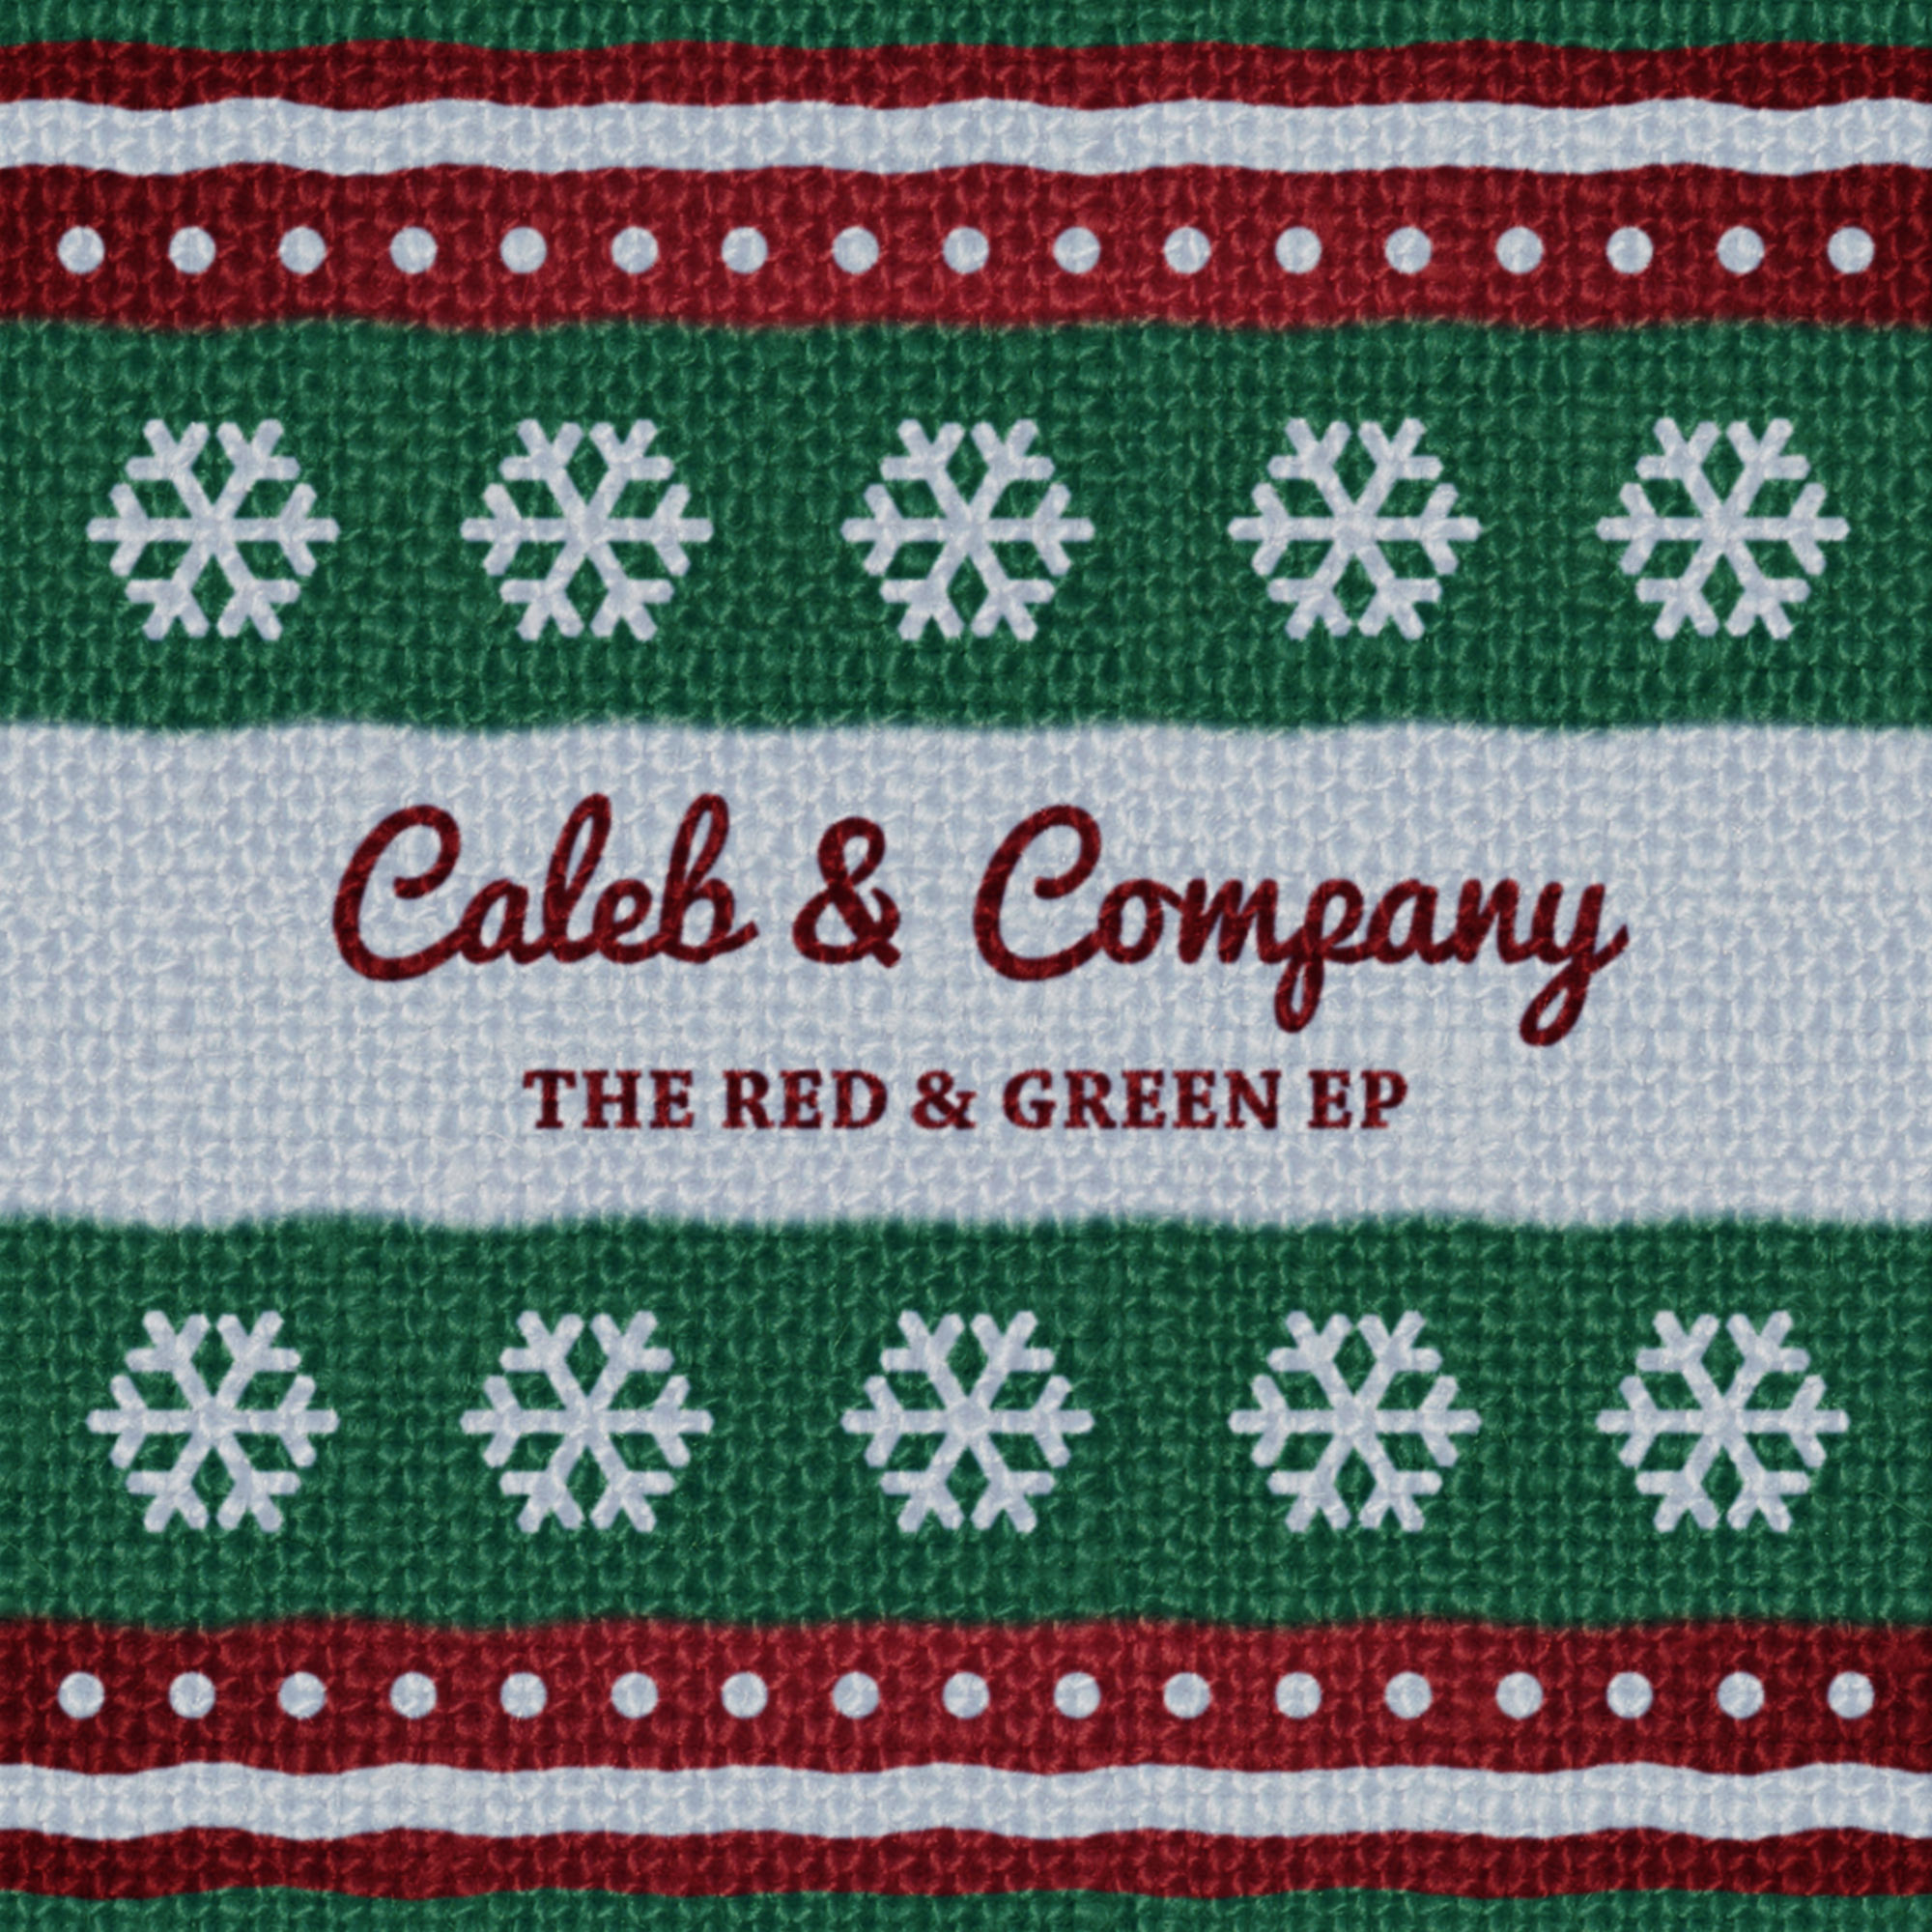 Caleb & Company : The Red & Green EP